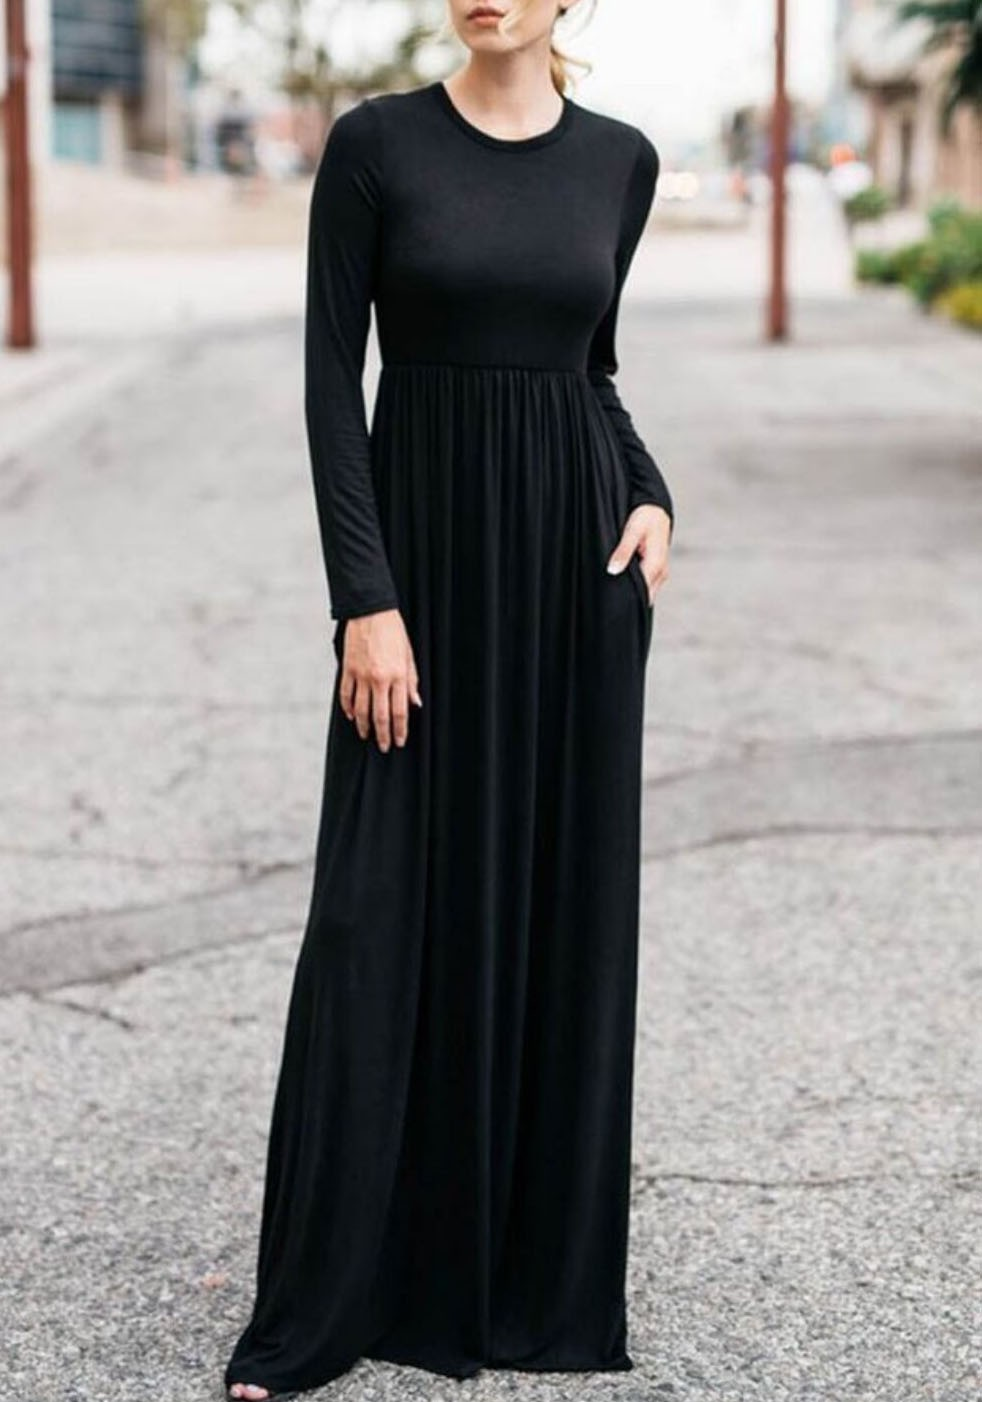 d6e0fc6abca Black Draped Pockets Round Neck Long Sleeve Casual Maxi Dress - Maxi ...